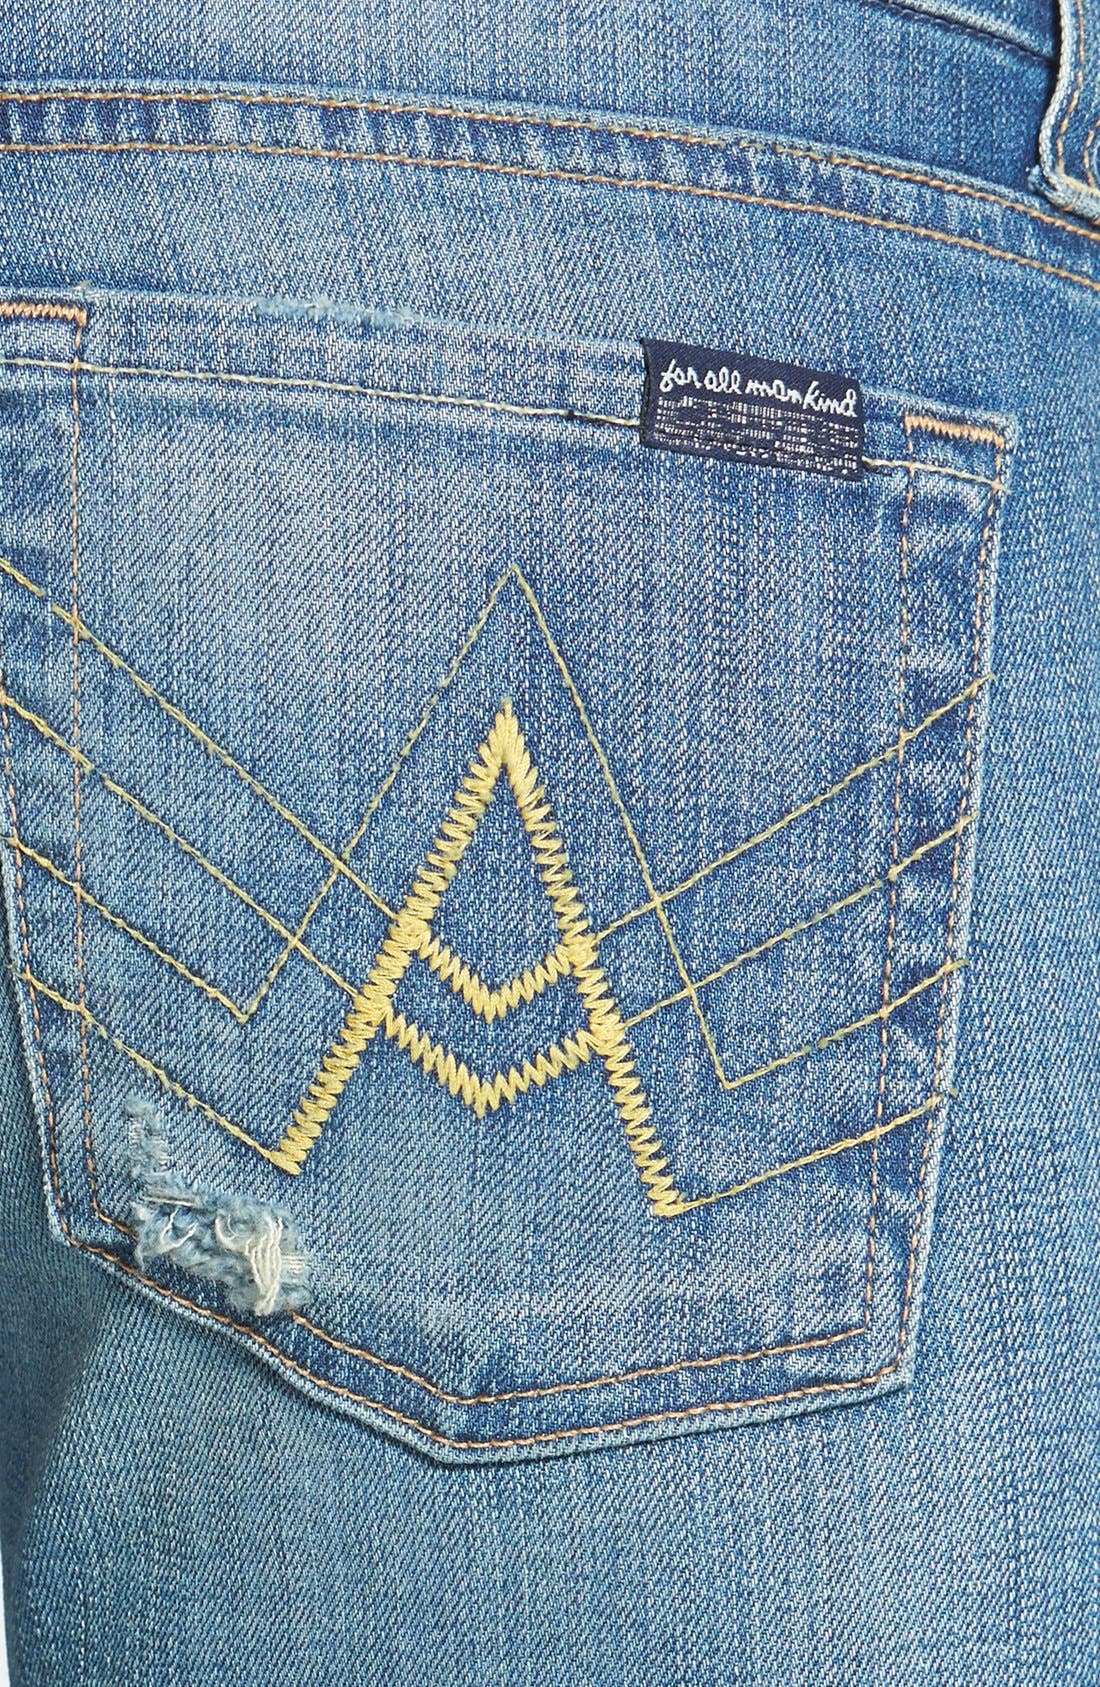 Alternate Image 3  - 7 For All Mankind® 'A Pocket' Bootcut Jeans (Dusty Vintage Blue)